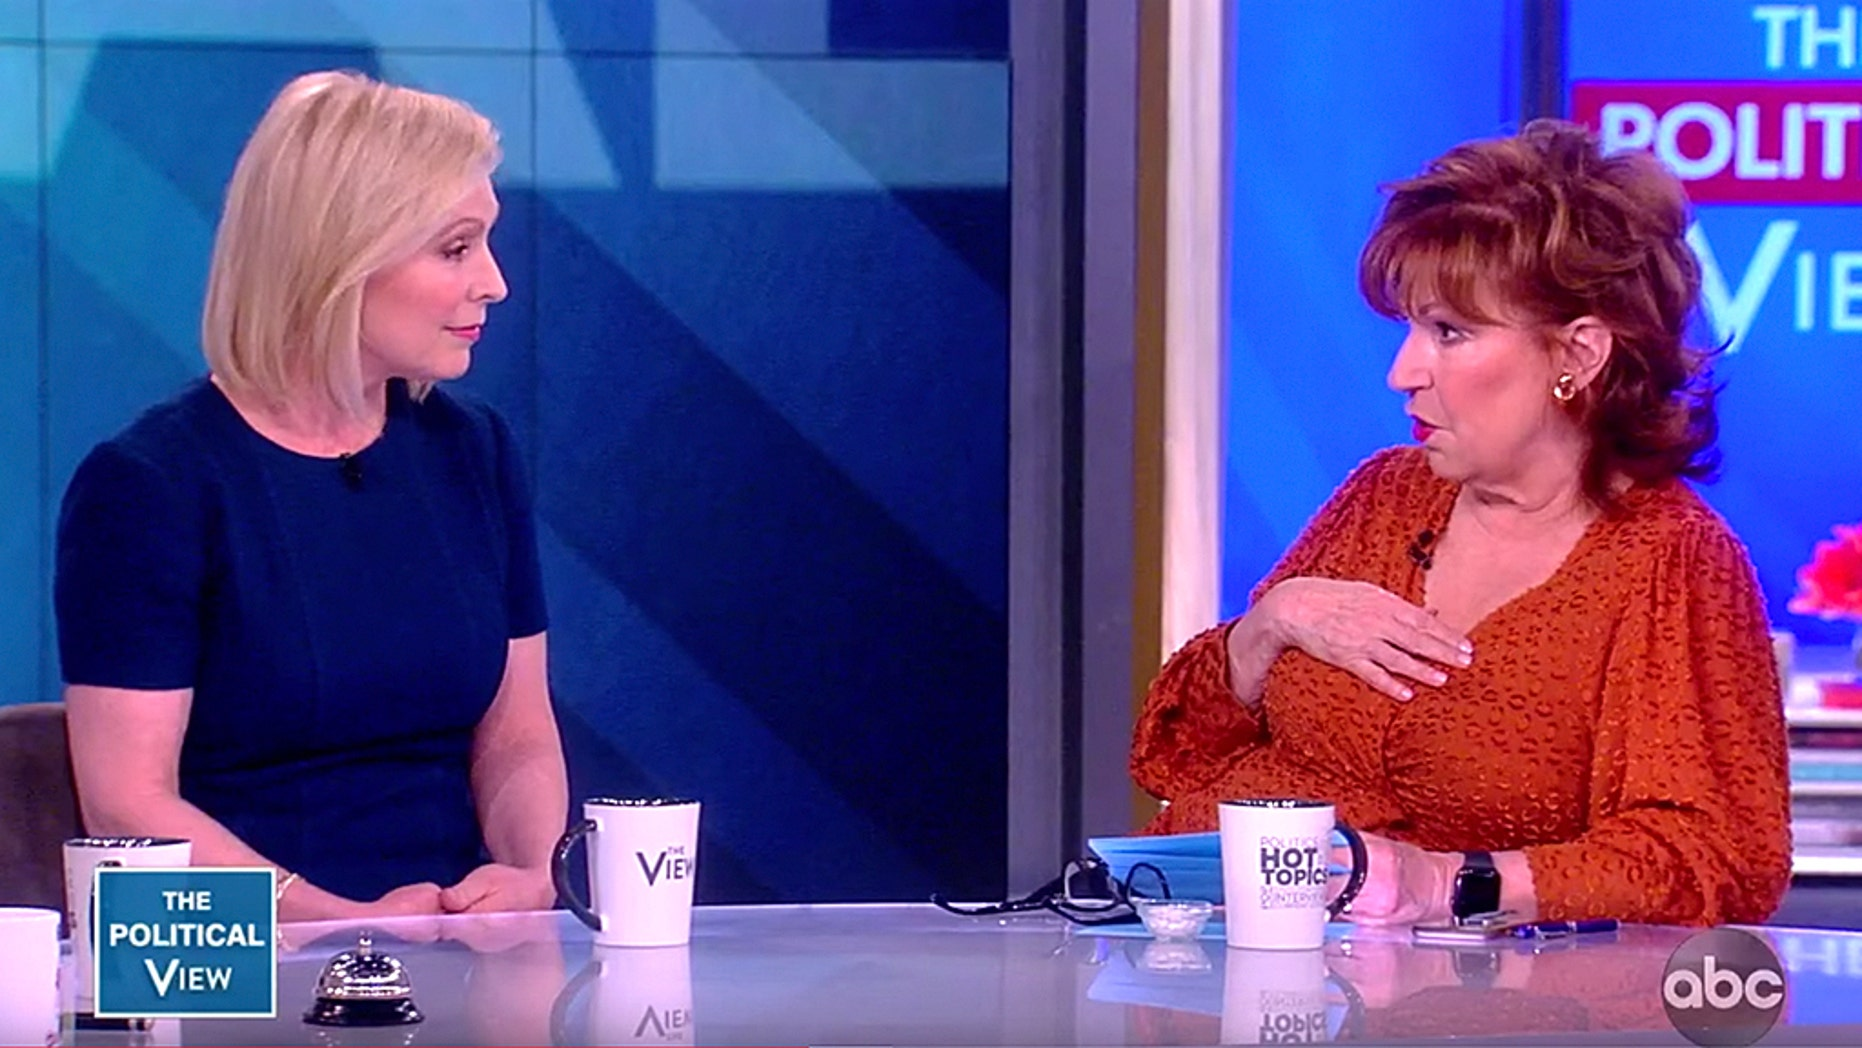 Westlake Legal Group Kirsten-Gillibrand-The-View-ABC Joy Behar tells Kirsten Gillibrand she doesn't believe Democrats are on even ground because they won't 'play dirty' fox-news/politics/2020-presidential-election fox-news/person/kirsten-gillibrand fox-news/person/joy-behar fox-news/entertainment/the-view fox-news/entertainment/media fox news fnc/entertainment fnc fae5a72f-7522-5126-b43e-8bfed11c7203 article Anna Hopkins